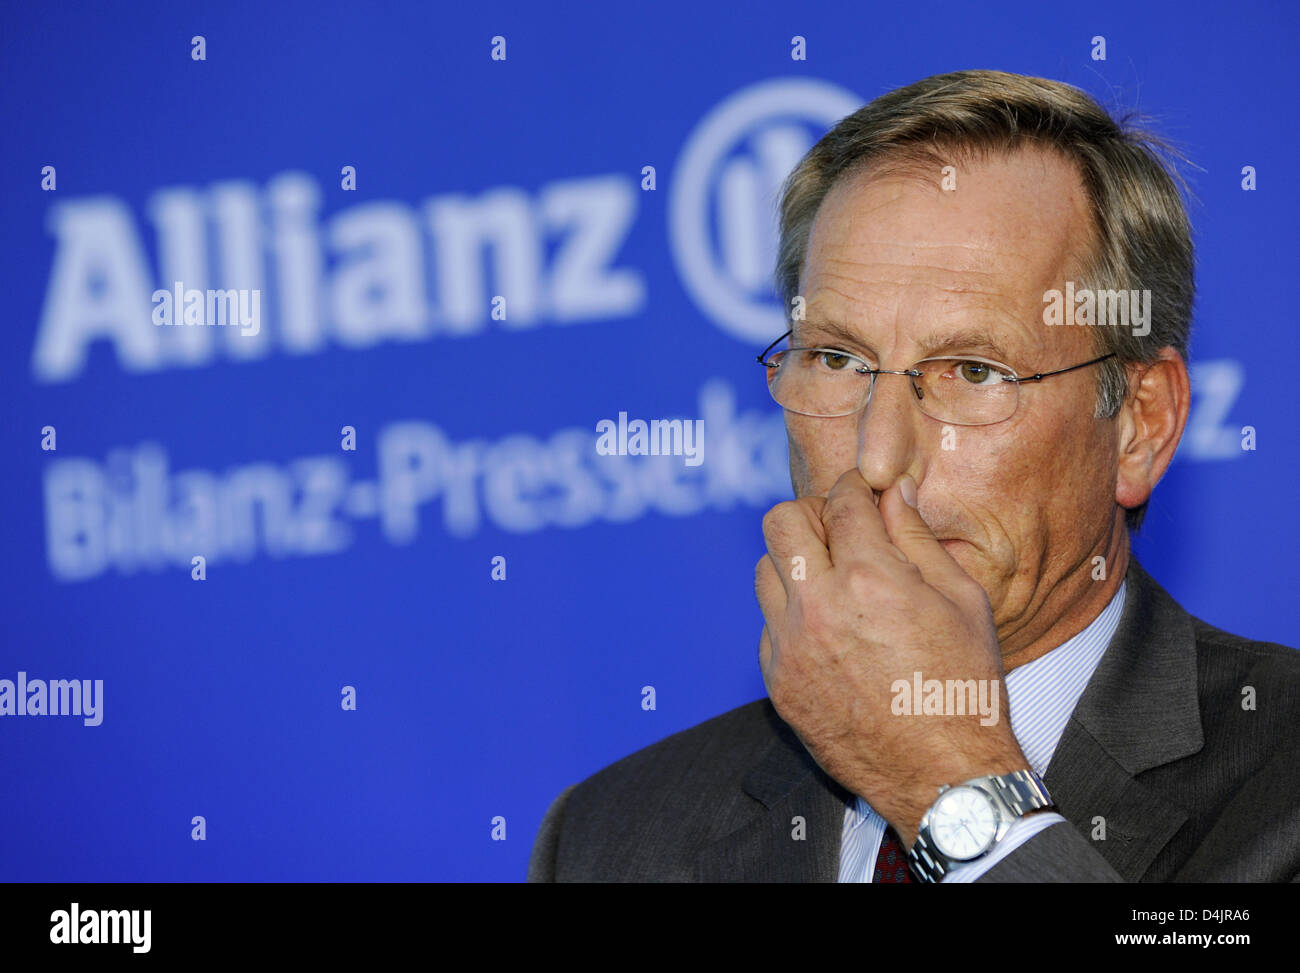 CEO of Allianz, Michael Diekmann, gestures during the balance press conference in Munich, Germany, 26 February 2009. After selling subsidiary ?Dresdner Bank? and also due to the financial crisis, Europe?s largest insurer has suffered a lost of 2.4 billion euro during the last year, as announced by Allianz SE in Munich. Photo: PETER KNEFFEL Stock Photo